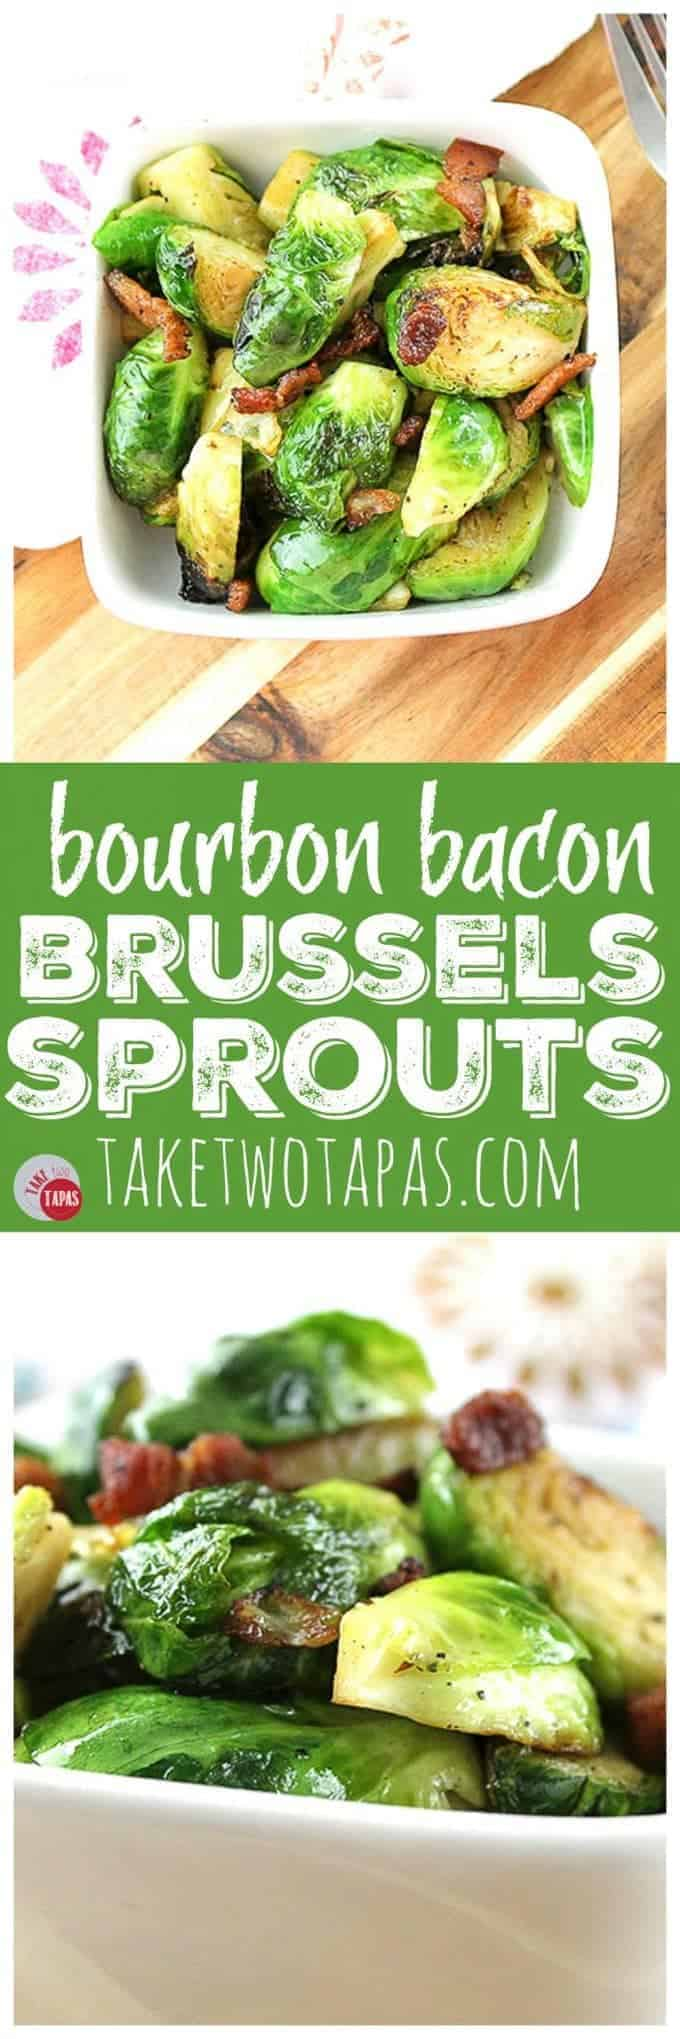 Bourbon Bacon Brussels Sprouts | Take Two Tapas | #Brussels #Sprouts #Bourbon #Bacon #SideDishRecipe #VegetableRecipe